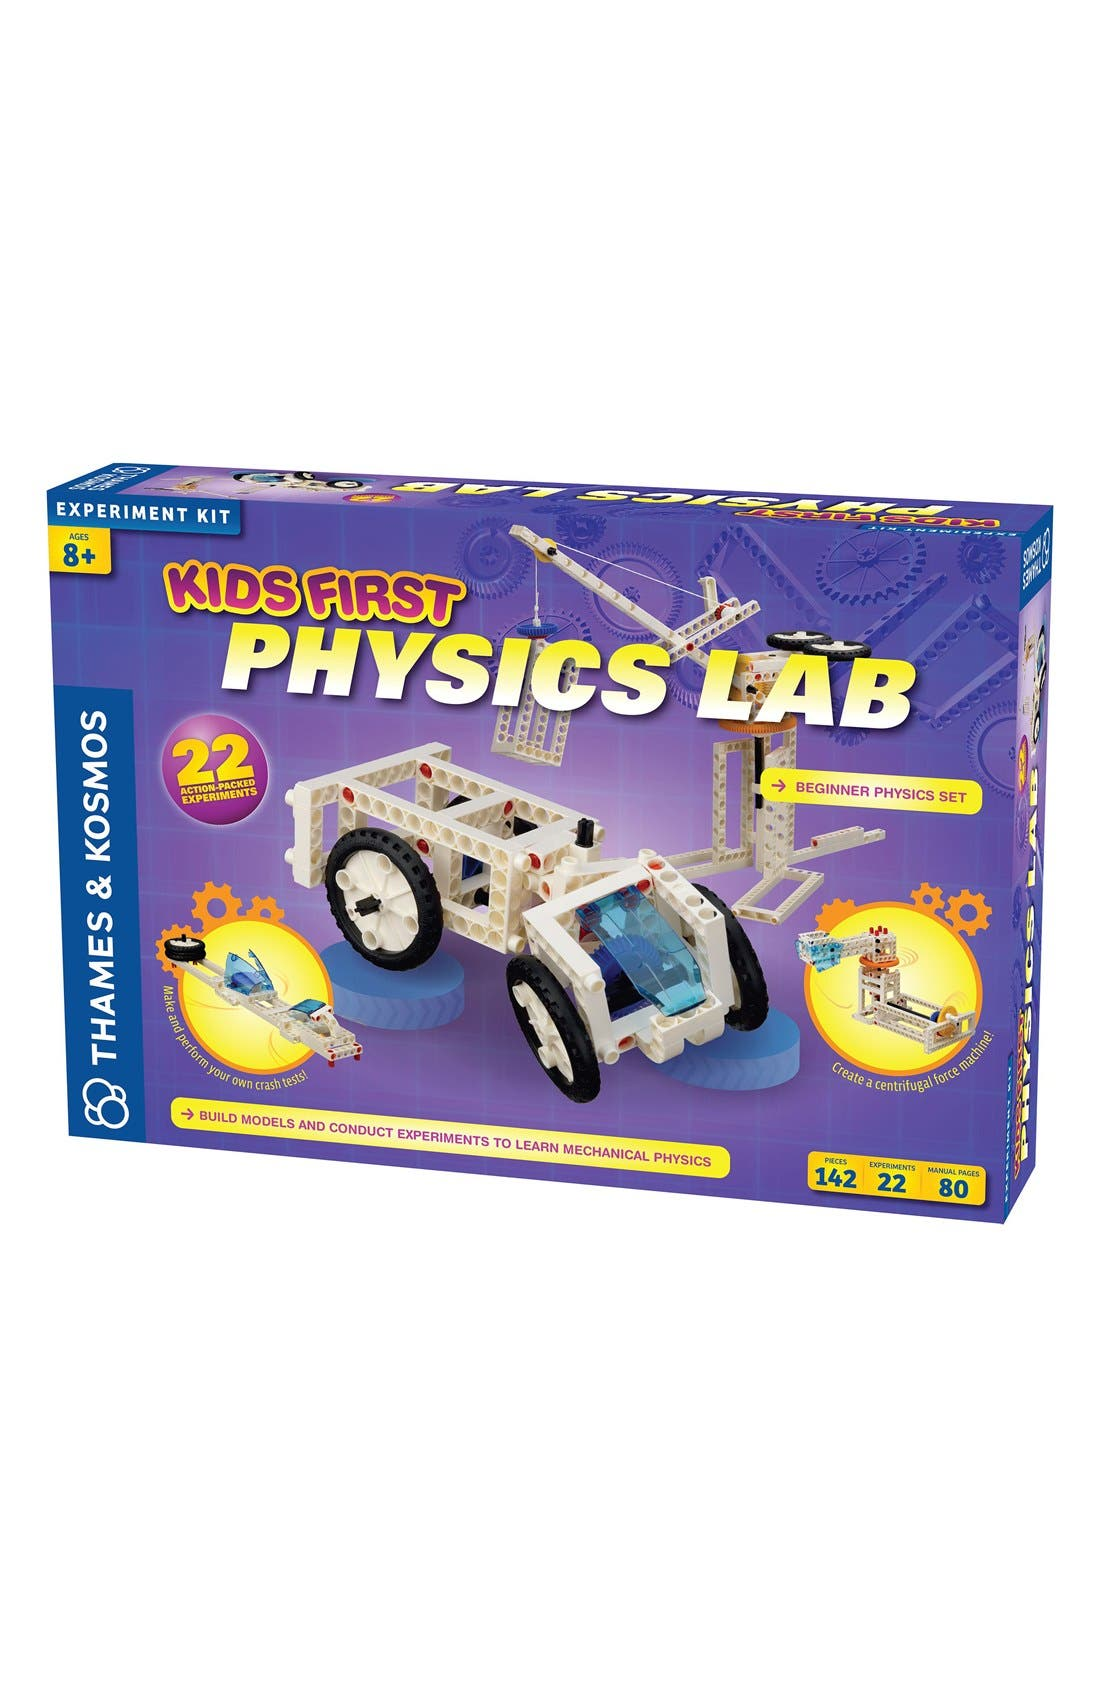 Thames & Kosmos 'Kids First - Physics Lab' Experiment Kit